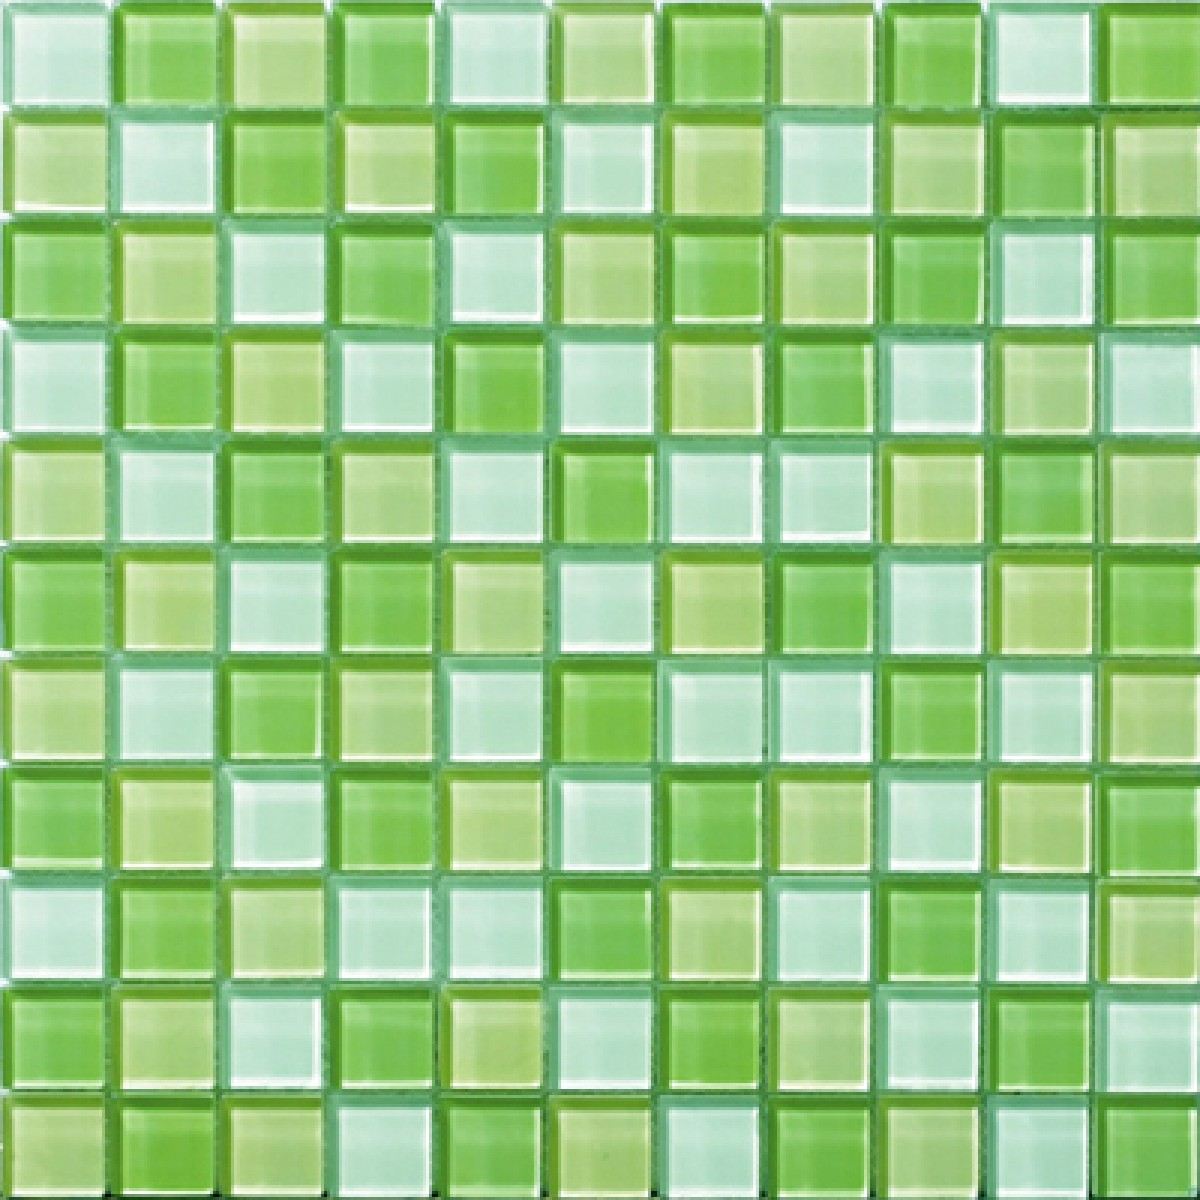 Brown Red And Orange Home Decor Glossyapple Green Blend Glass Mosaic Tile Mesh Backed Sheet